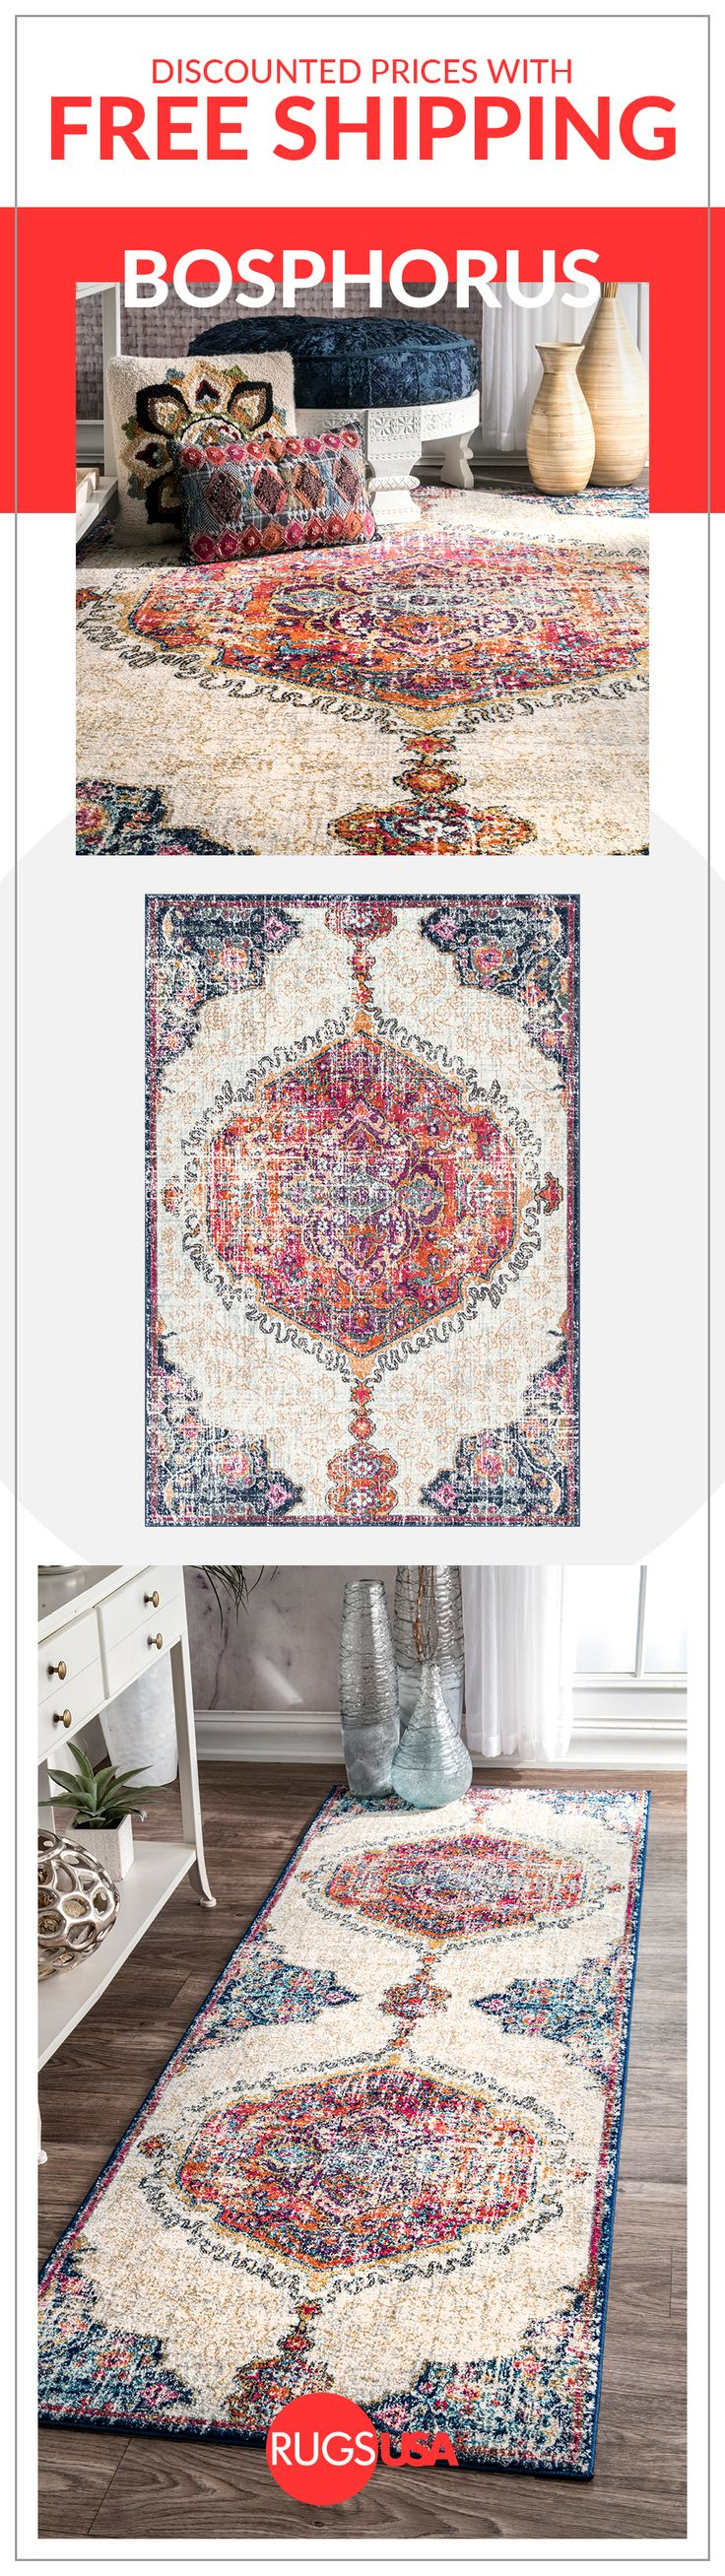 The Bosphorus Frilly Corinthian Medallion Rug is a gorgeous updated take on the Medallion Rug.